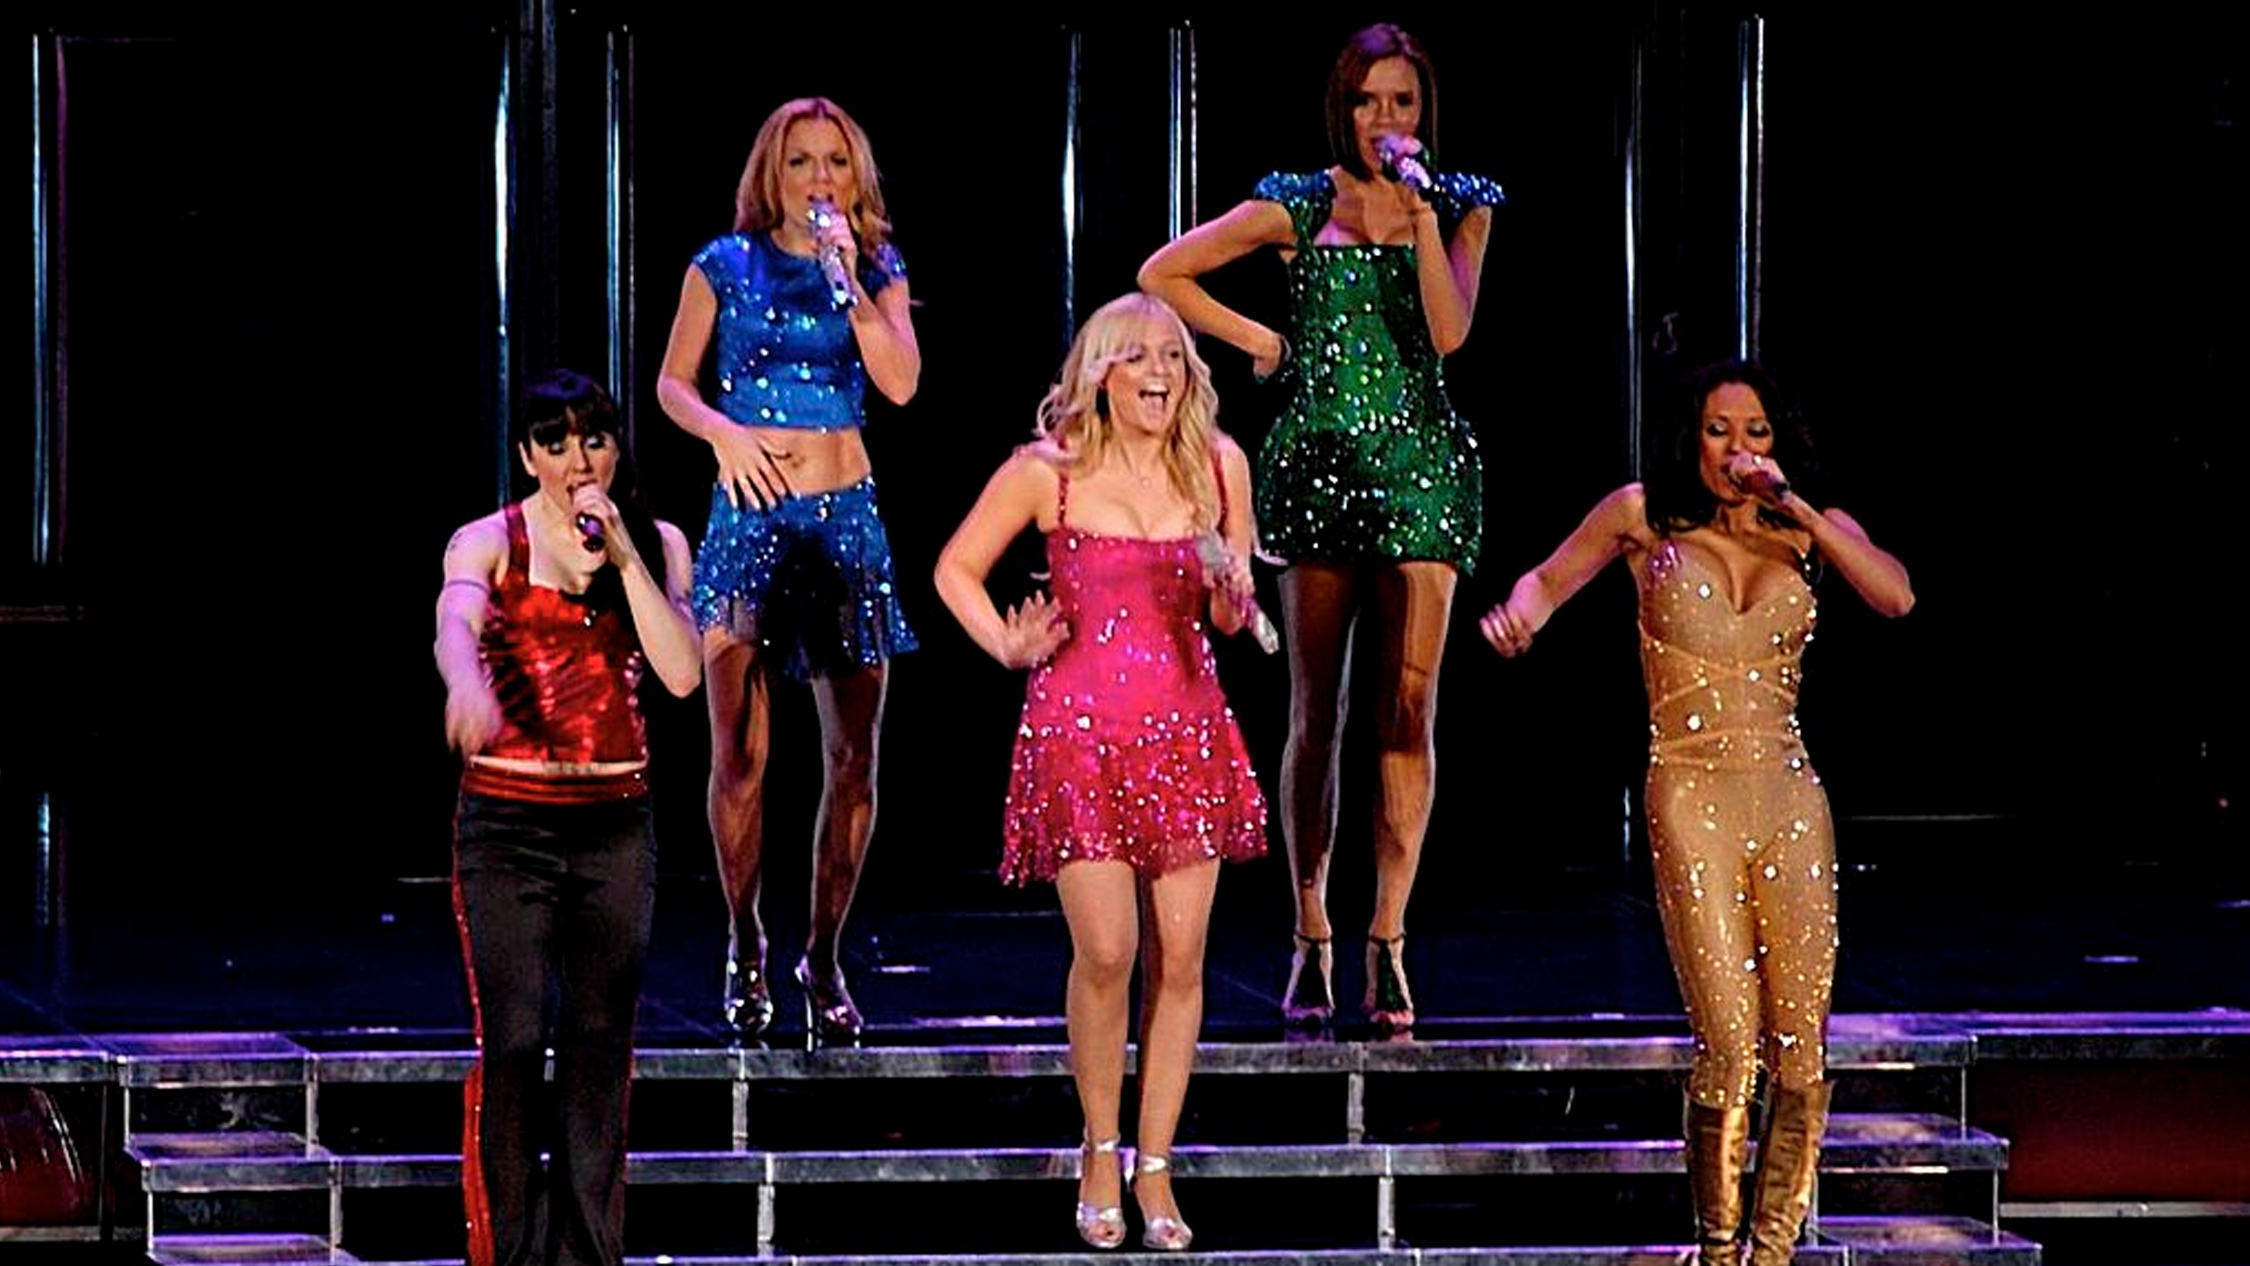 The Spice Girls say they're coming to Australia in February